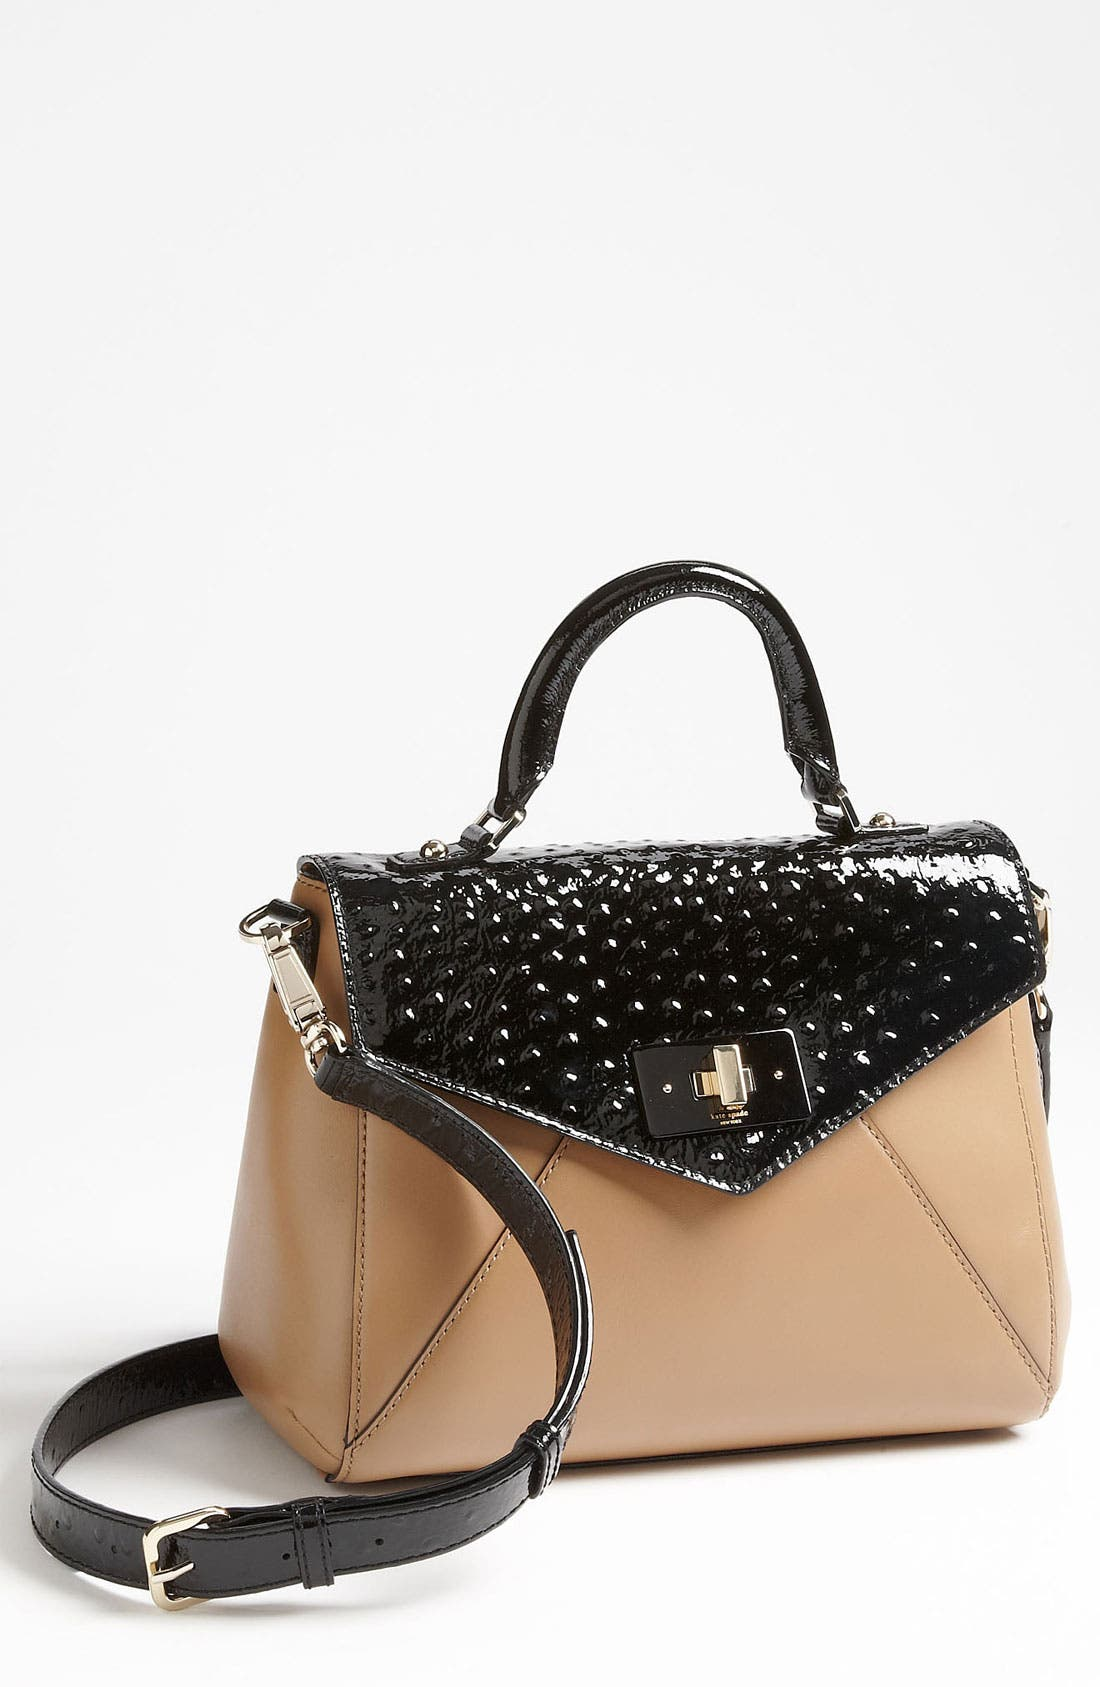 Alternate Image 1 Selected - kate spade new york 'post street - little nadine' satchel